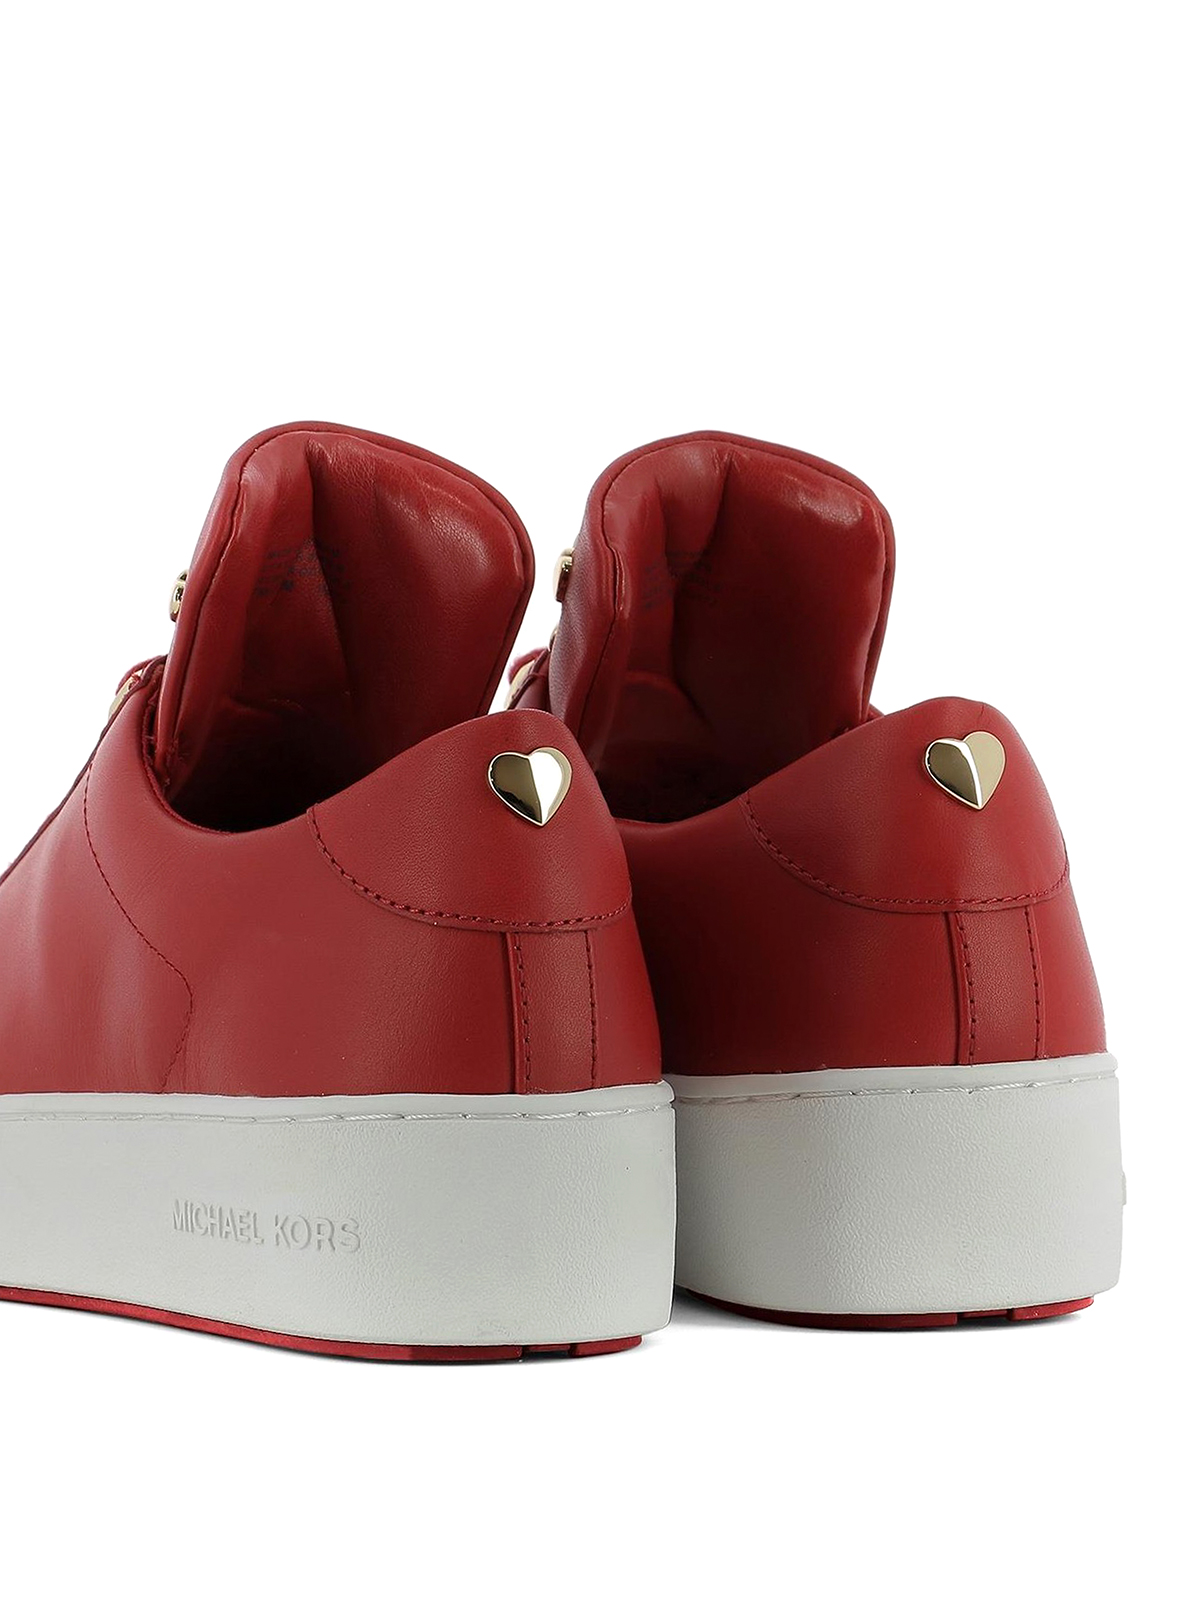 Michael Kors - Red leather sneakers